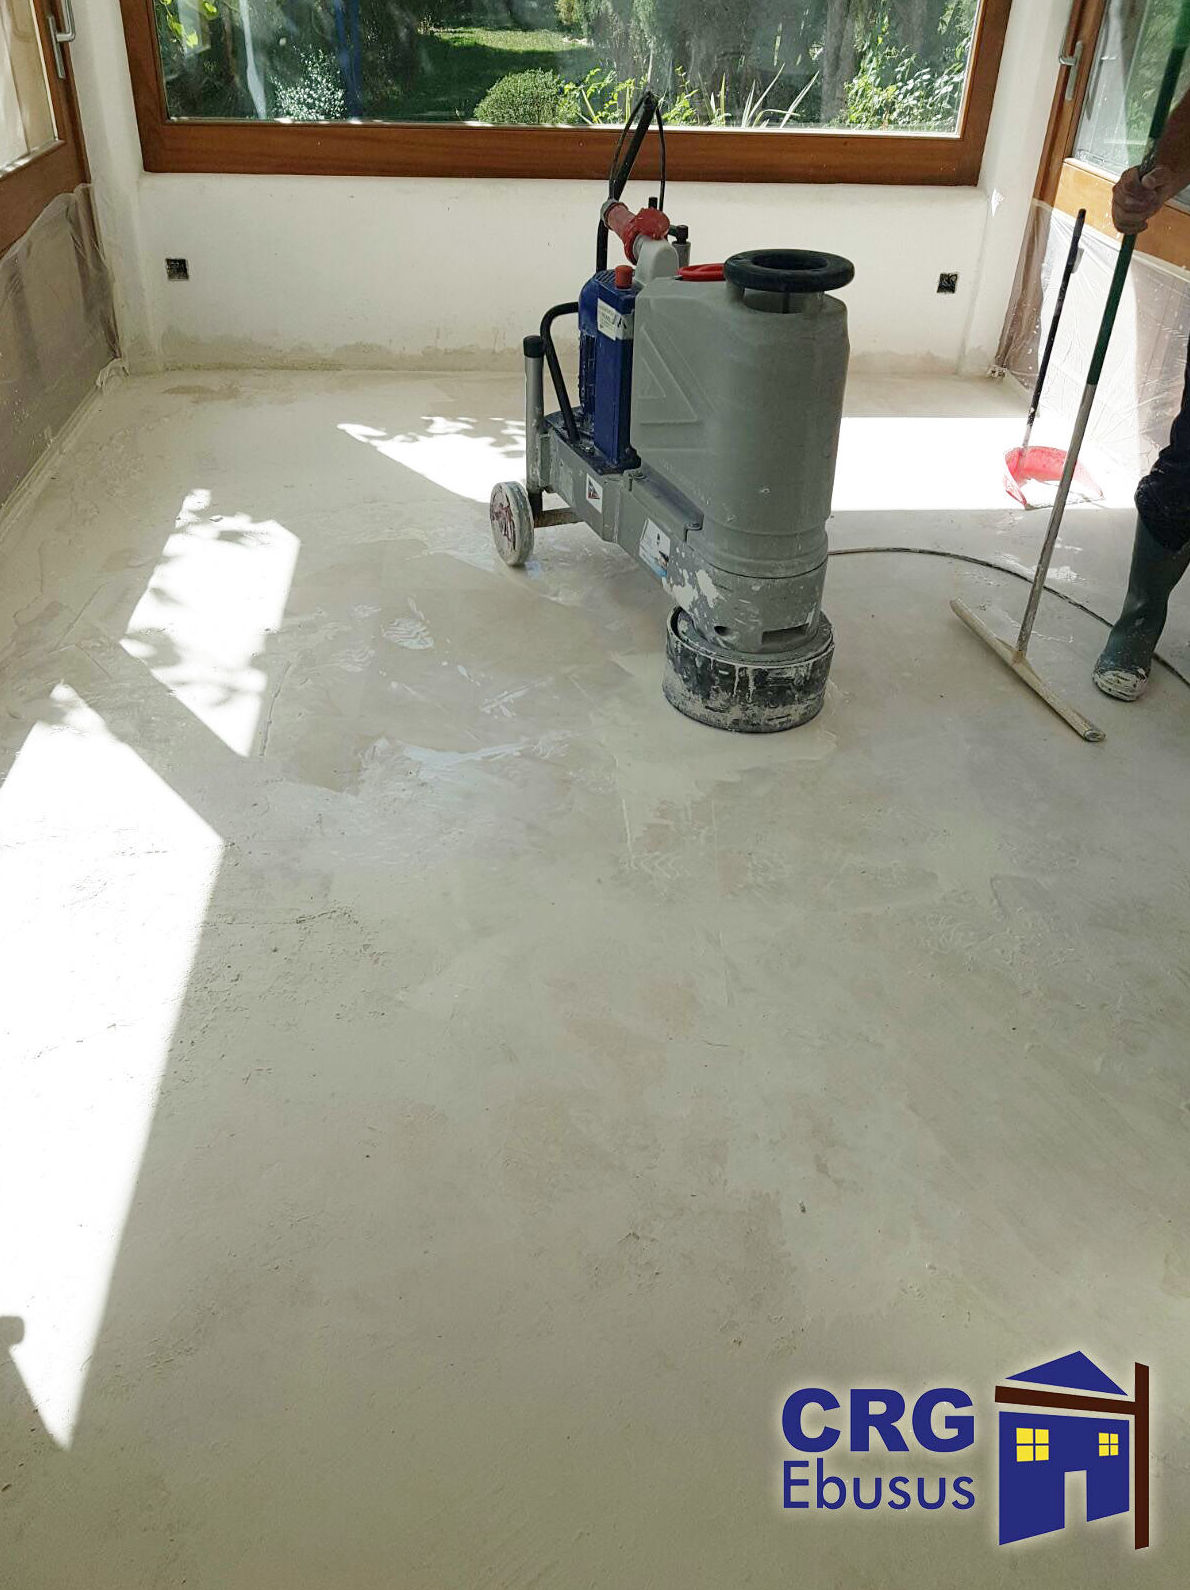 Foto 9 de Floor and vertical concrete polishing en Eivissa | CRG Ebusus